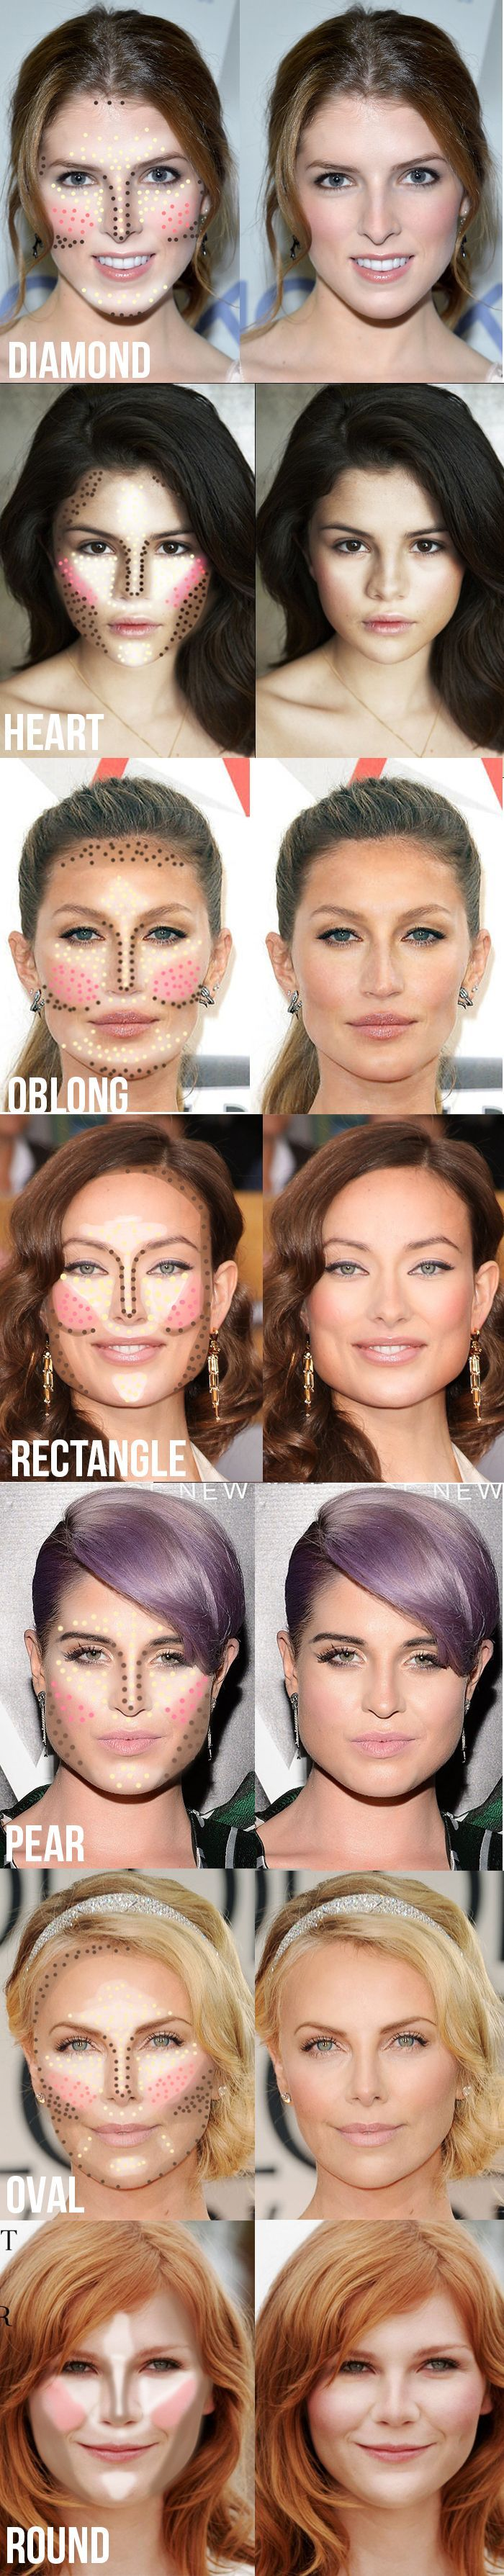 Highlighting and contouring guide for your face shape!